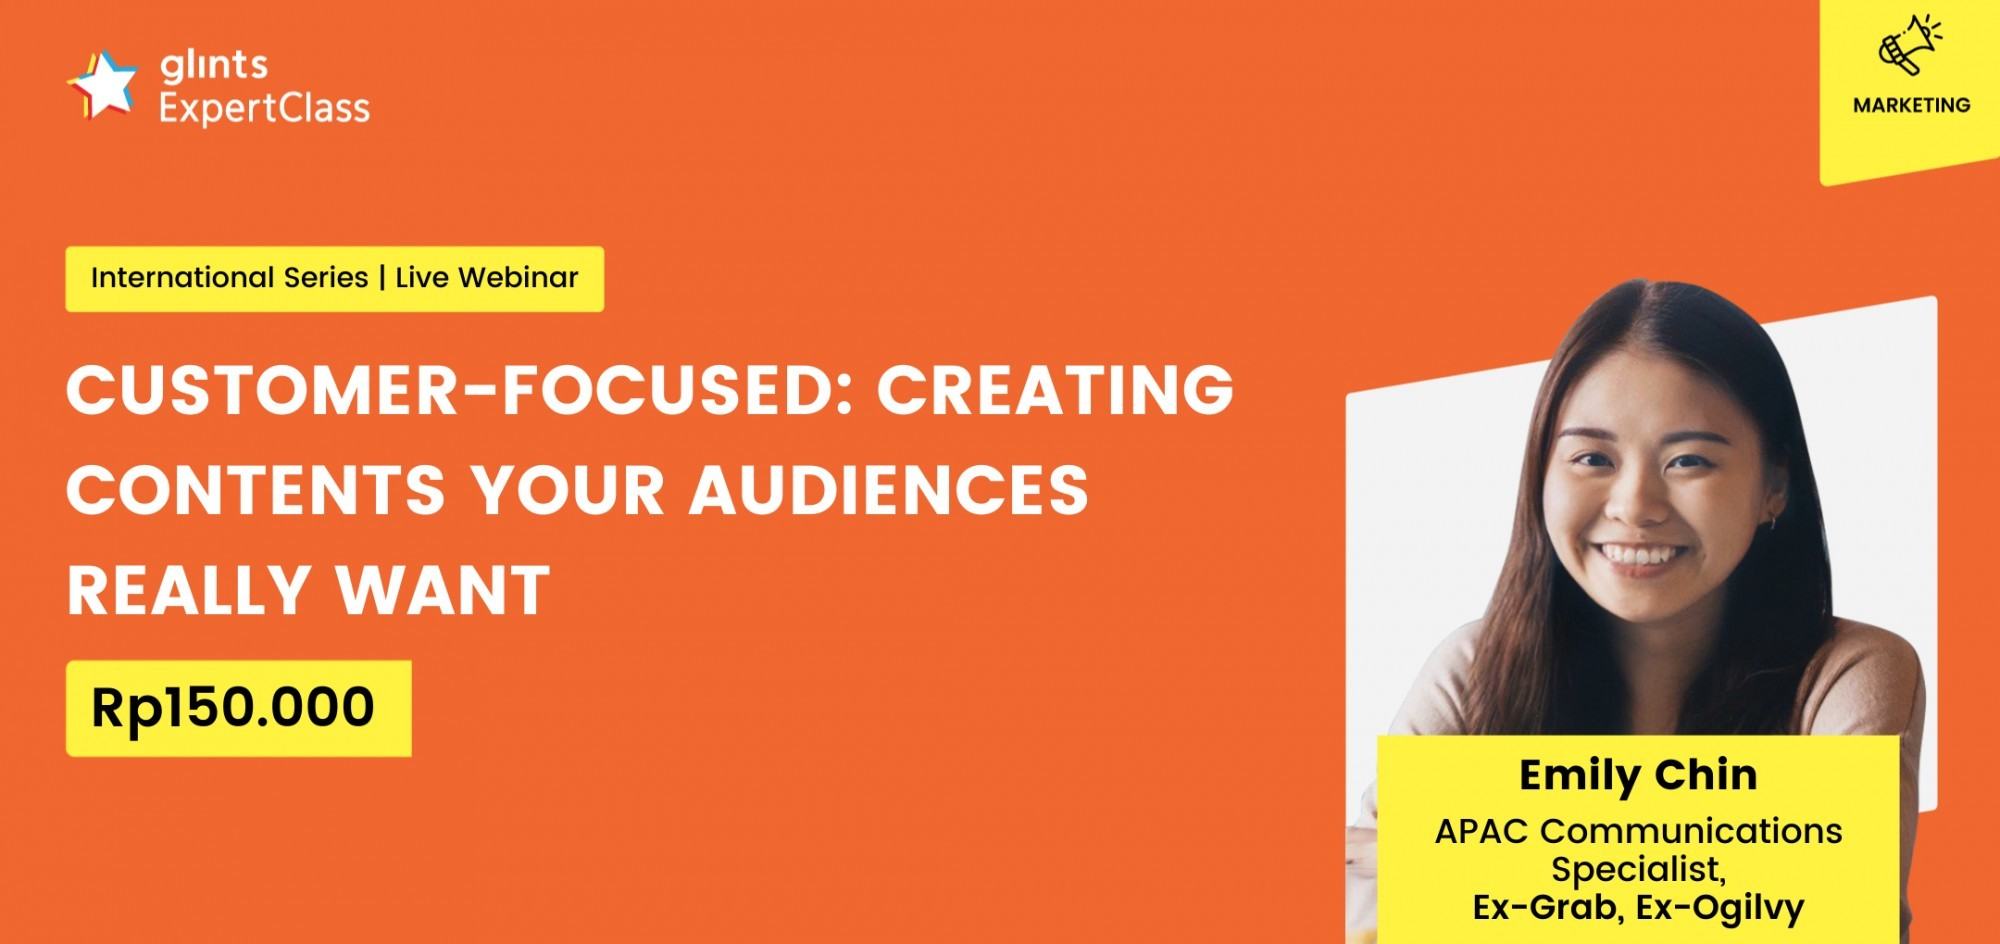 [Glints - GEC International Series] Customer-Focused: Creating Contents Your Audiences Really Want